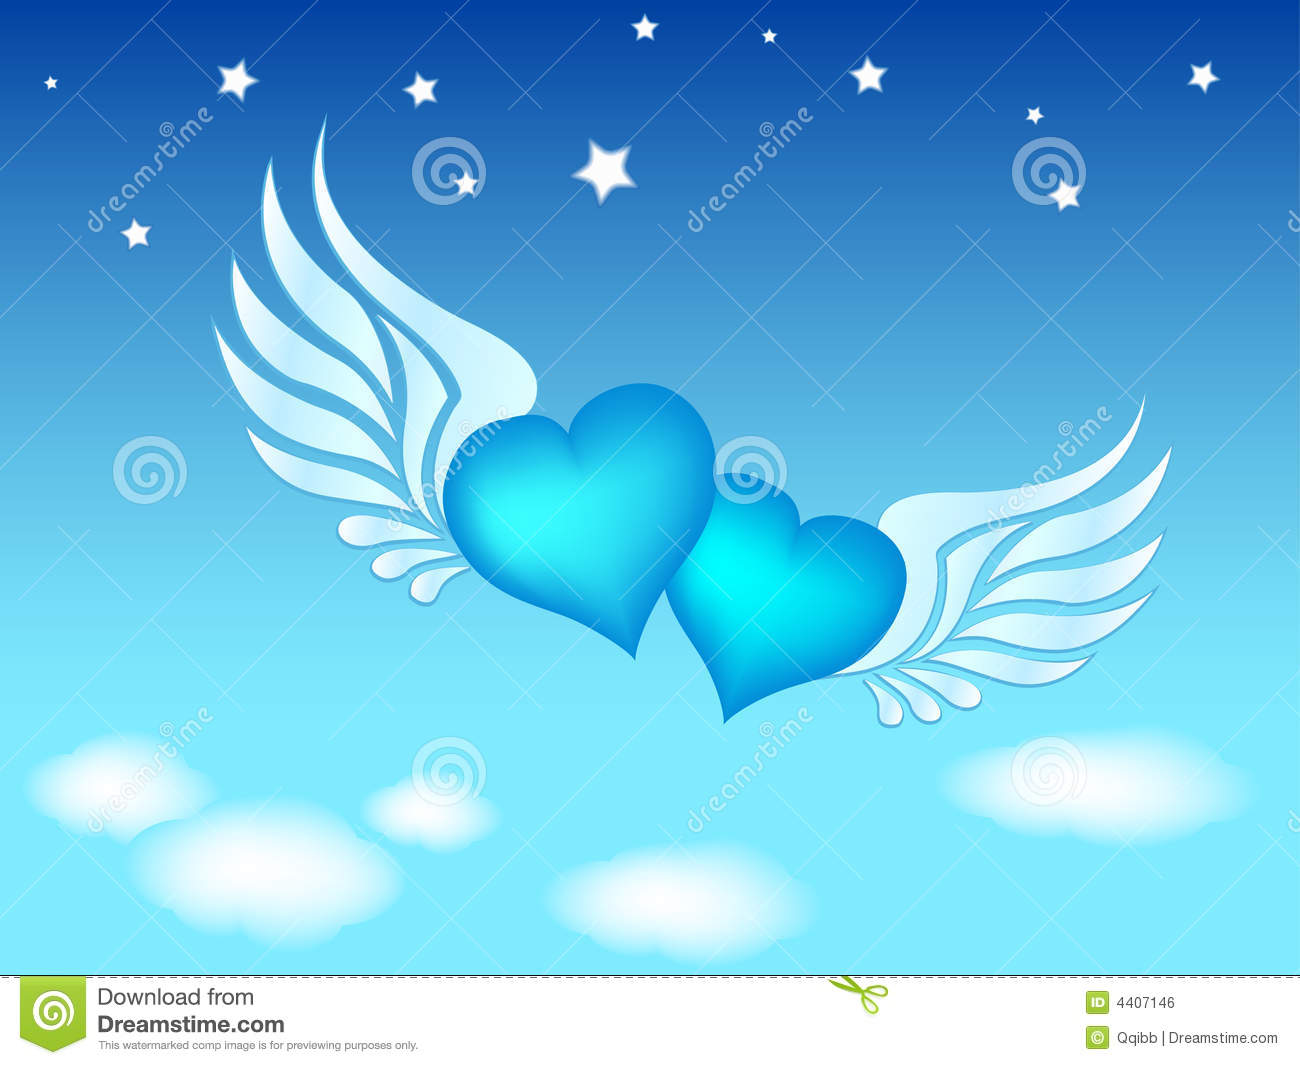 Clip-art Of Flying Hearts Royalty Free Stock Image - Image: 4407146